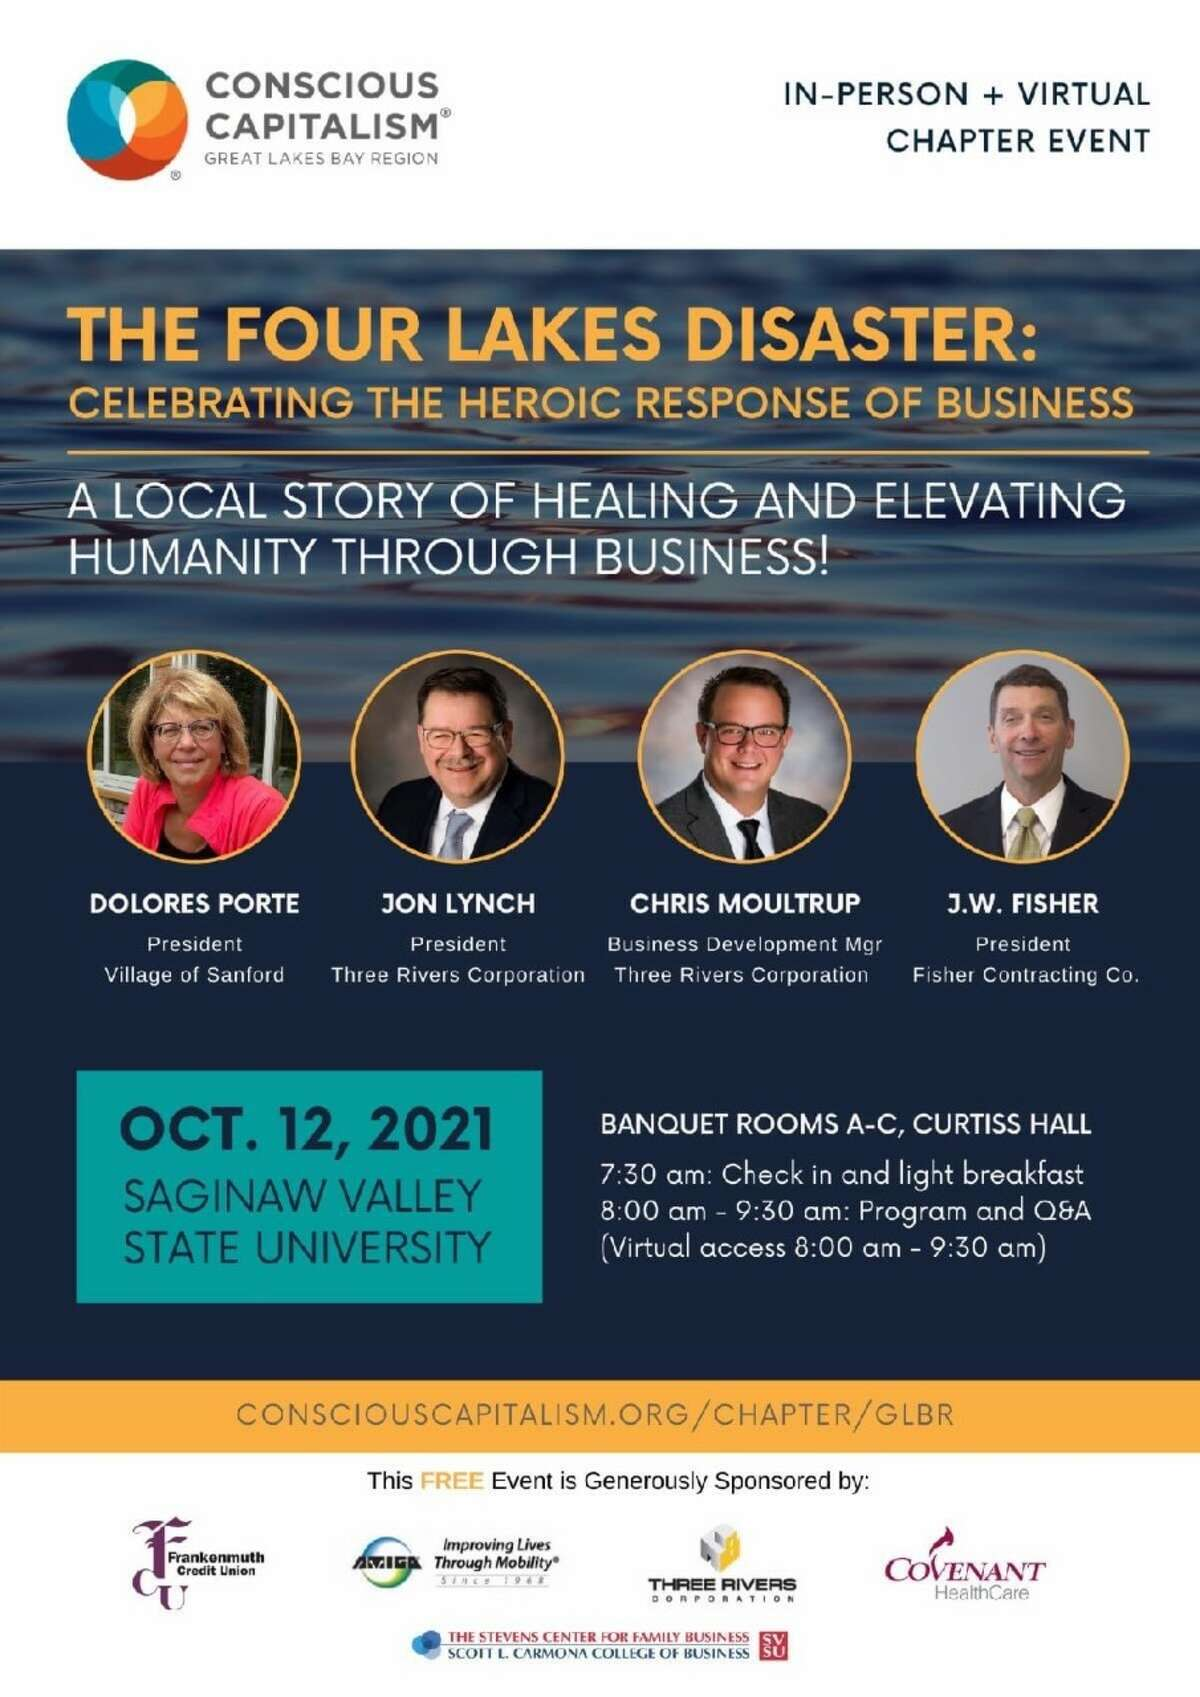 """""""Four Lakes Disaster: Celebrating the Heroic Response of Business"""" was held on Tuesday, Oct. 12 at Saginaw Valley State University. The event was also facilitated online through Zoom."""